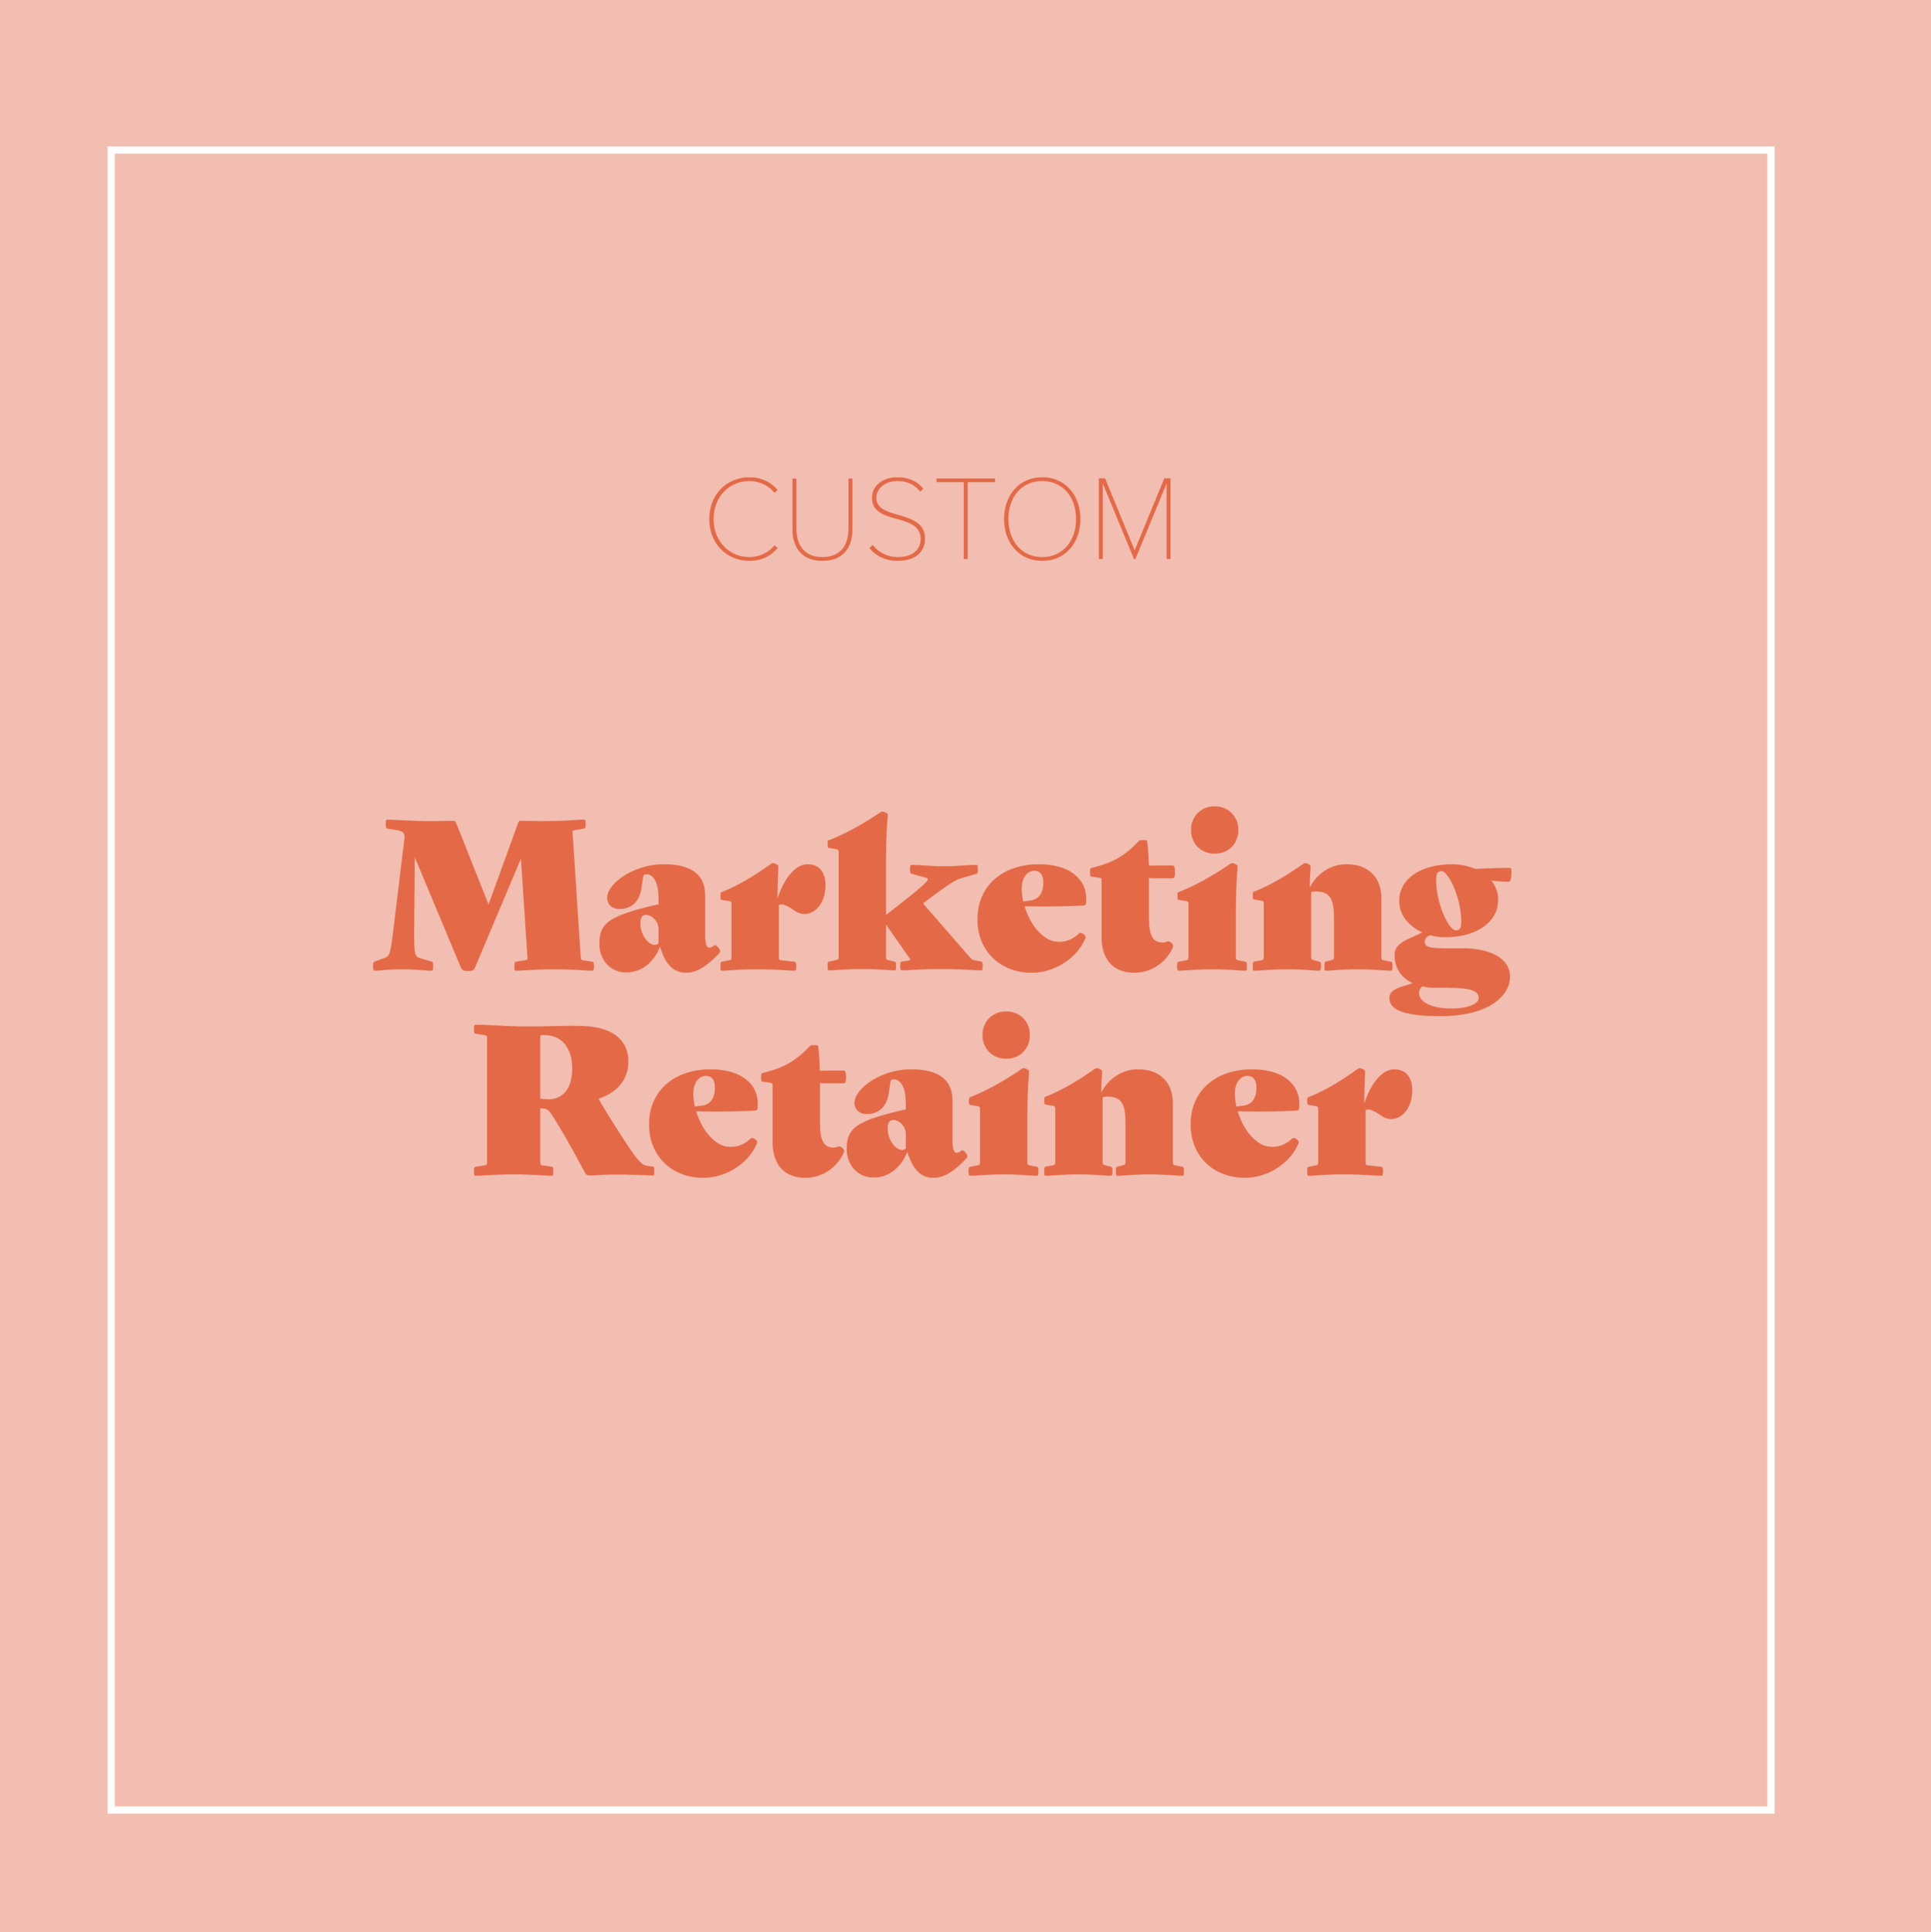 014_marketingretainer_stacyaguilar.png